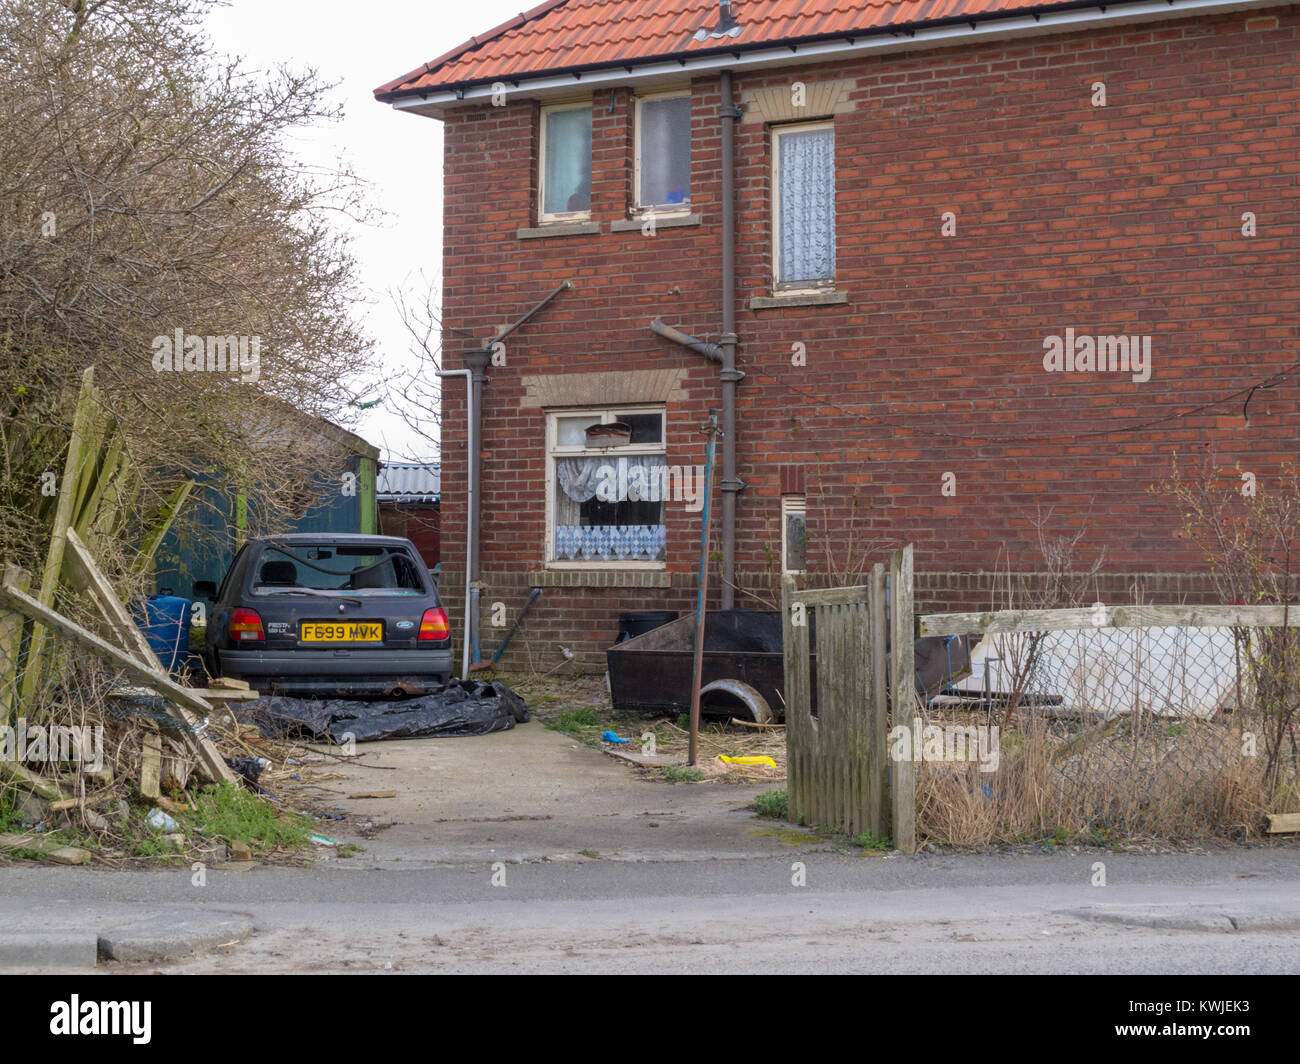 Old Ford Fiesta car with broken windows outside a brick council house in Consett, County Durham, UK, - Stock Image